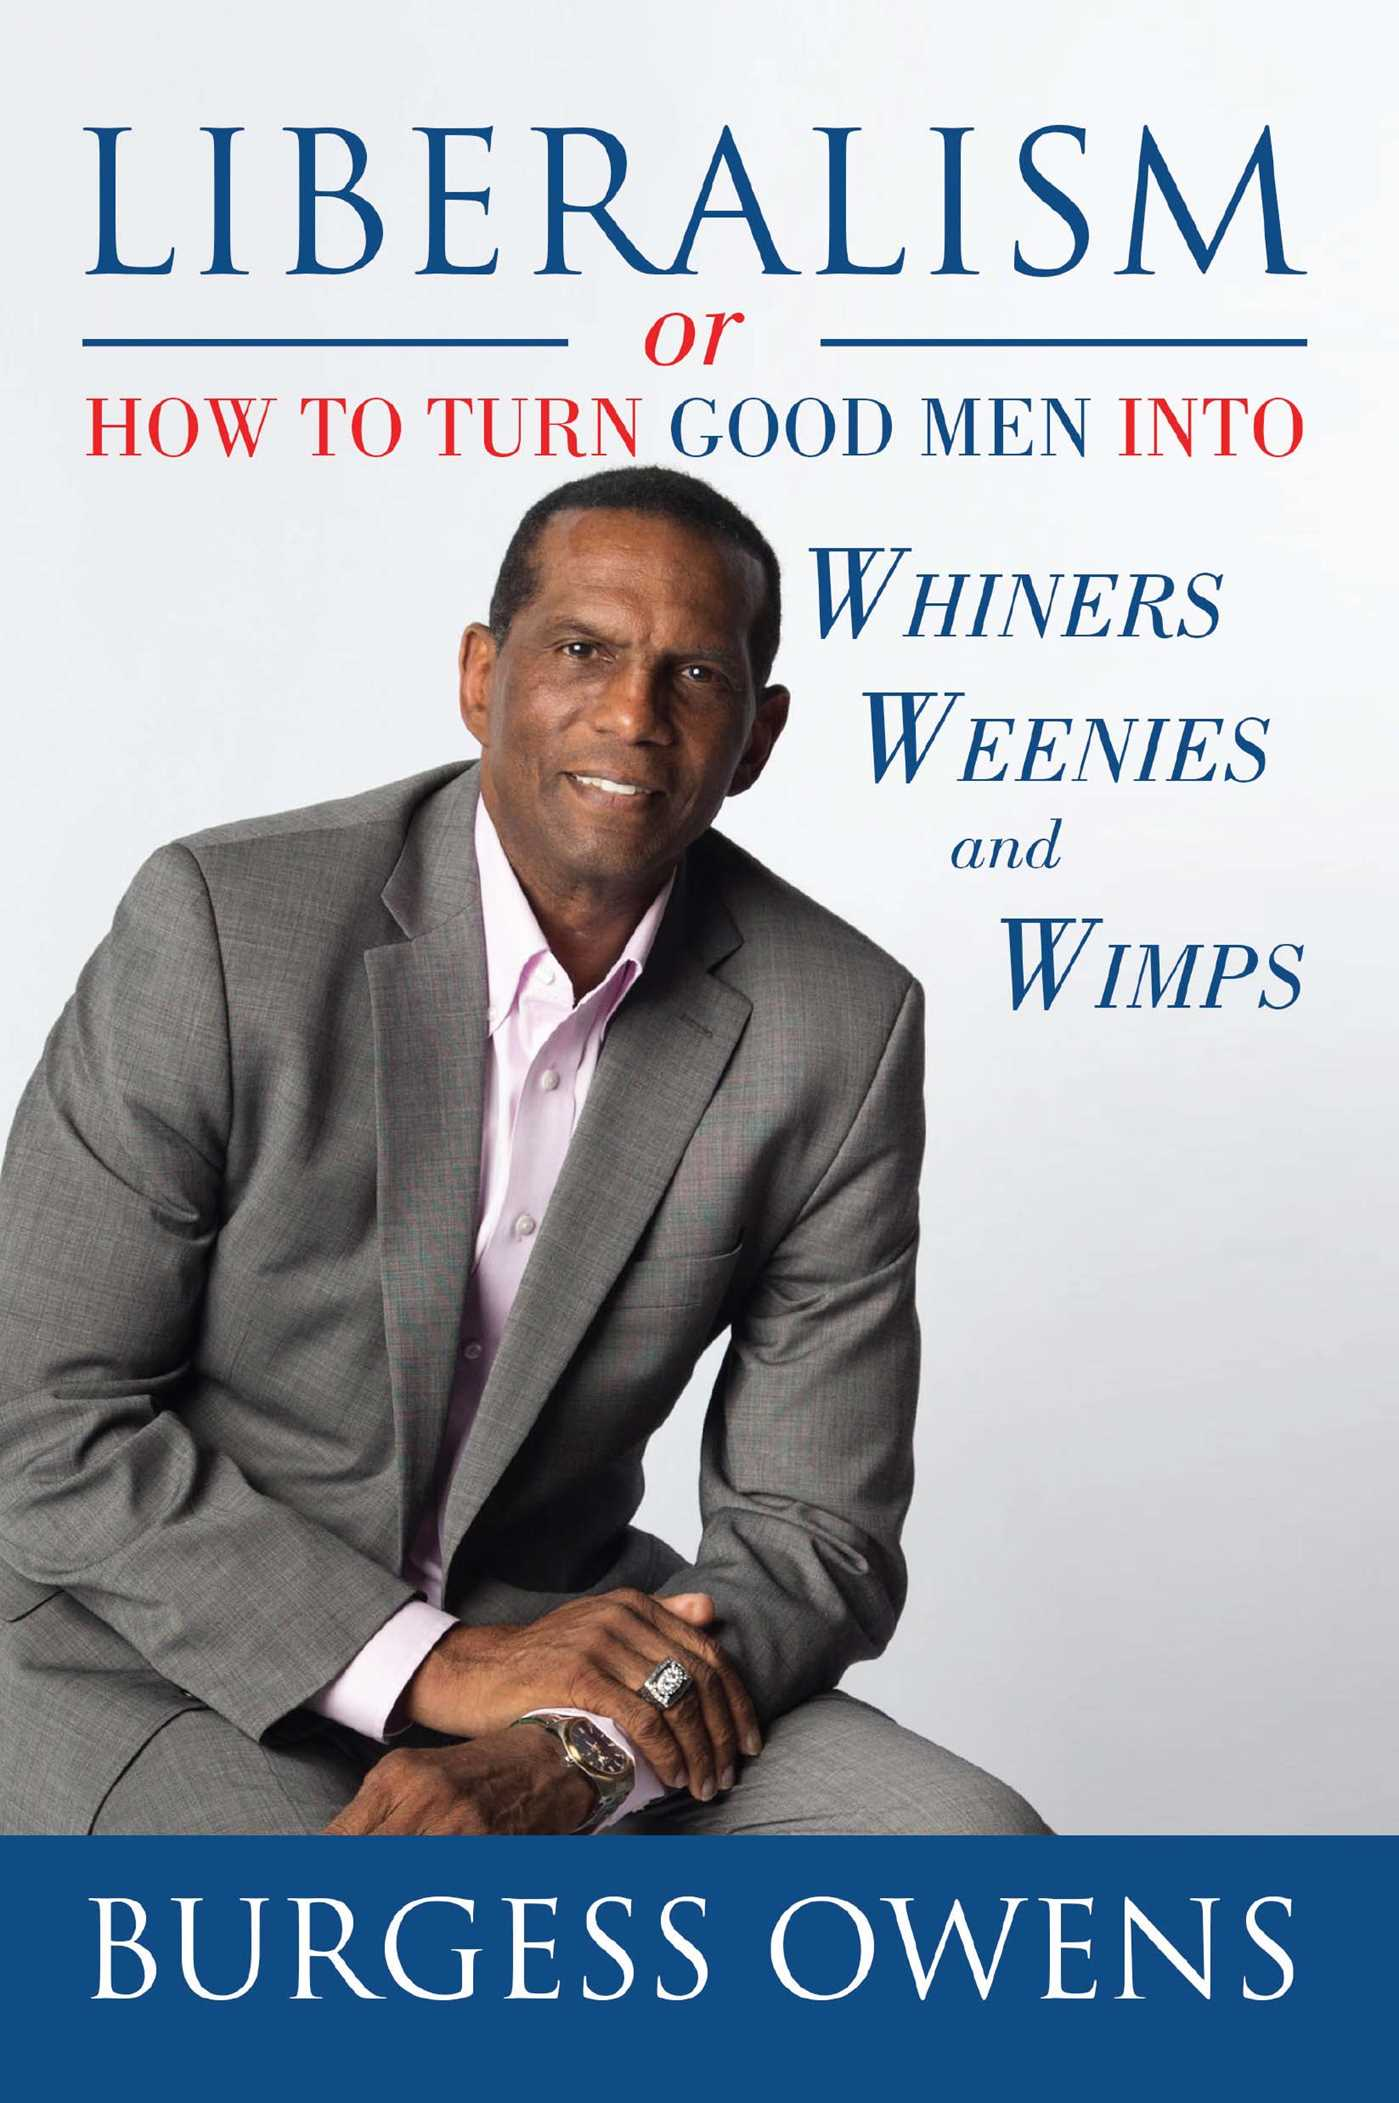 liberalism author burgess owens - HD 1200×1802